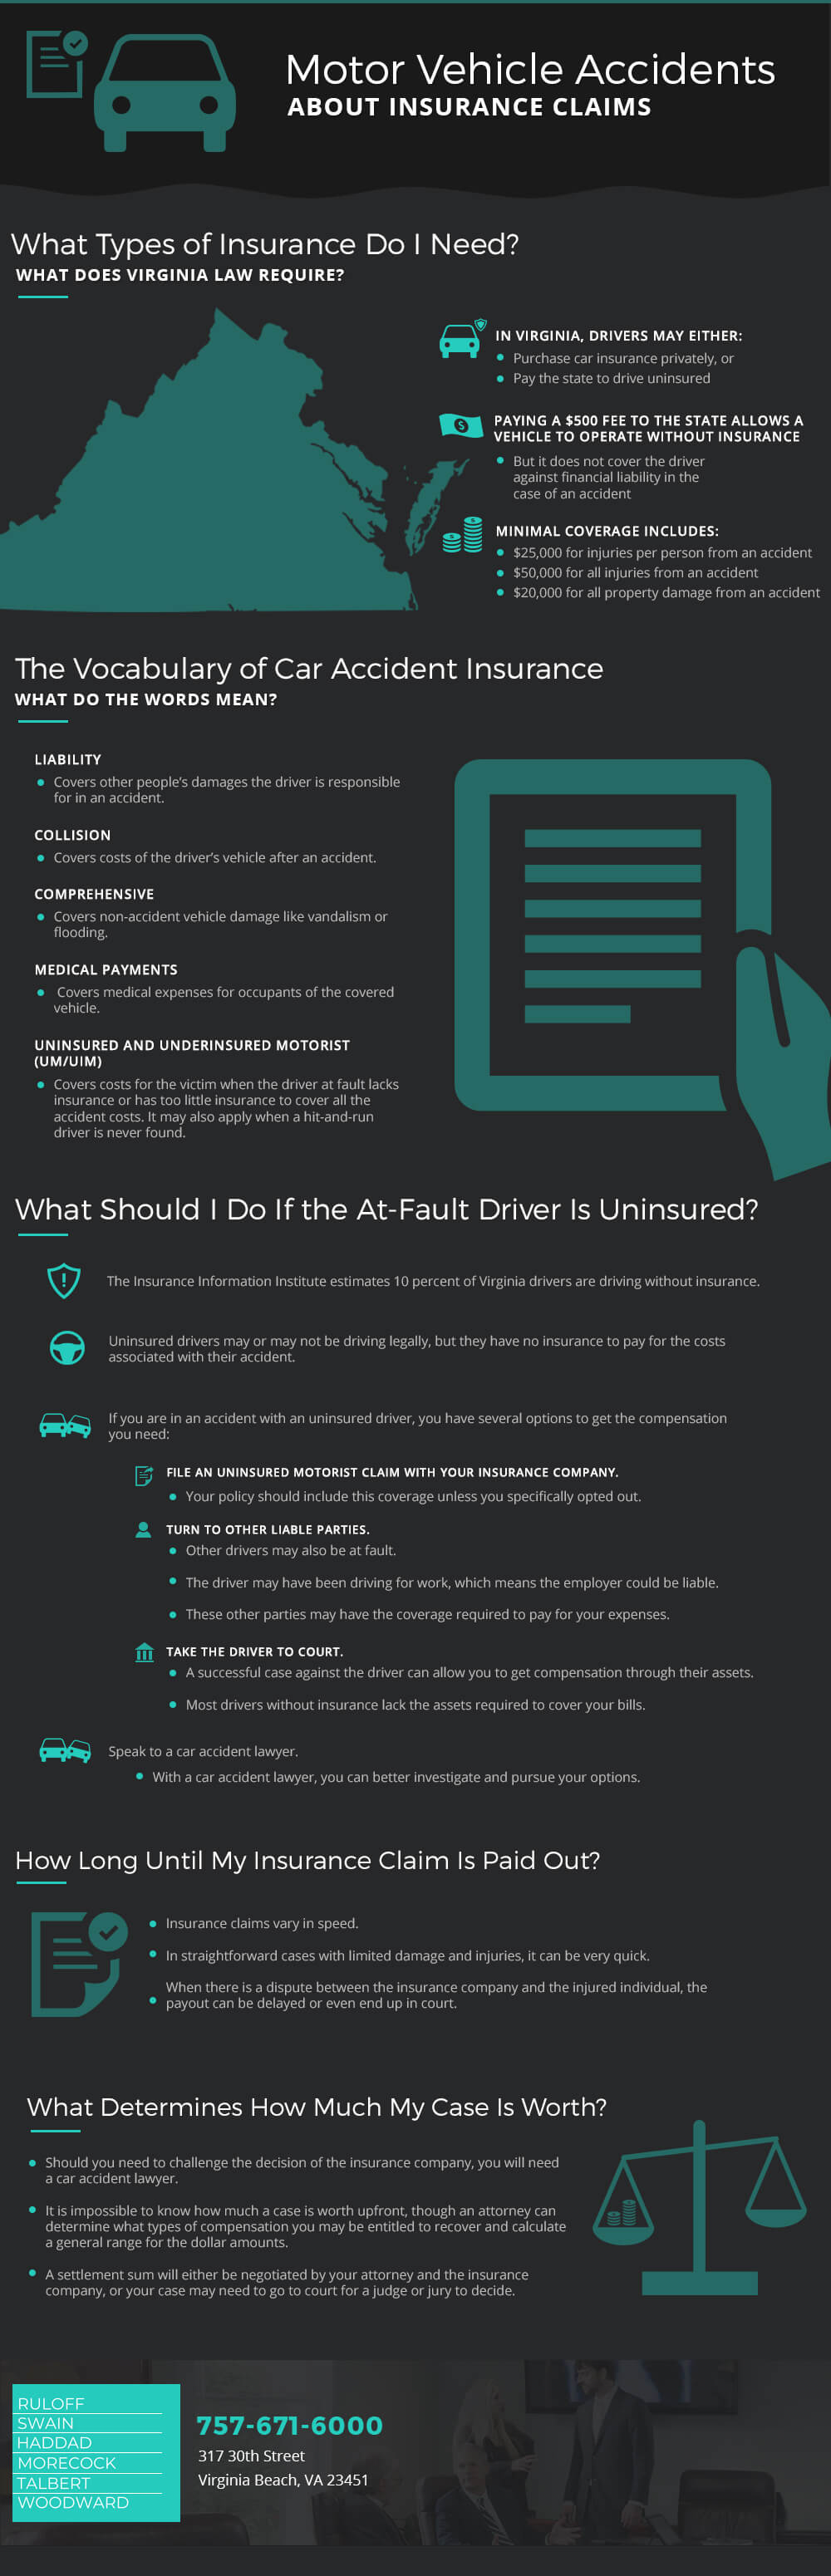 SRGS-Car-Accident-Insurance-Claims-Infographic